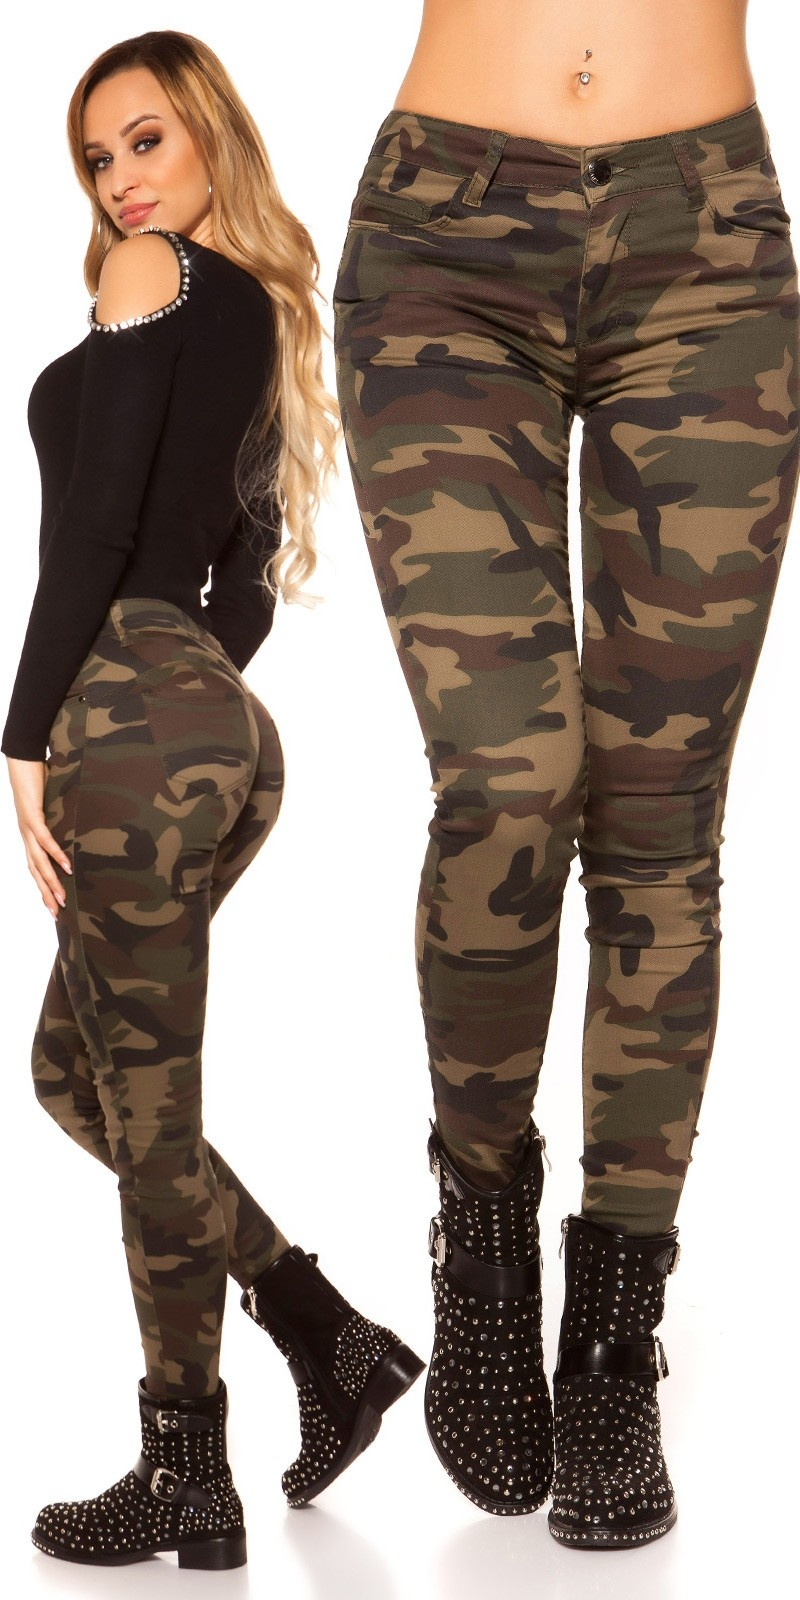 Sexy skinny jeans in camouflage Army